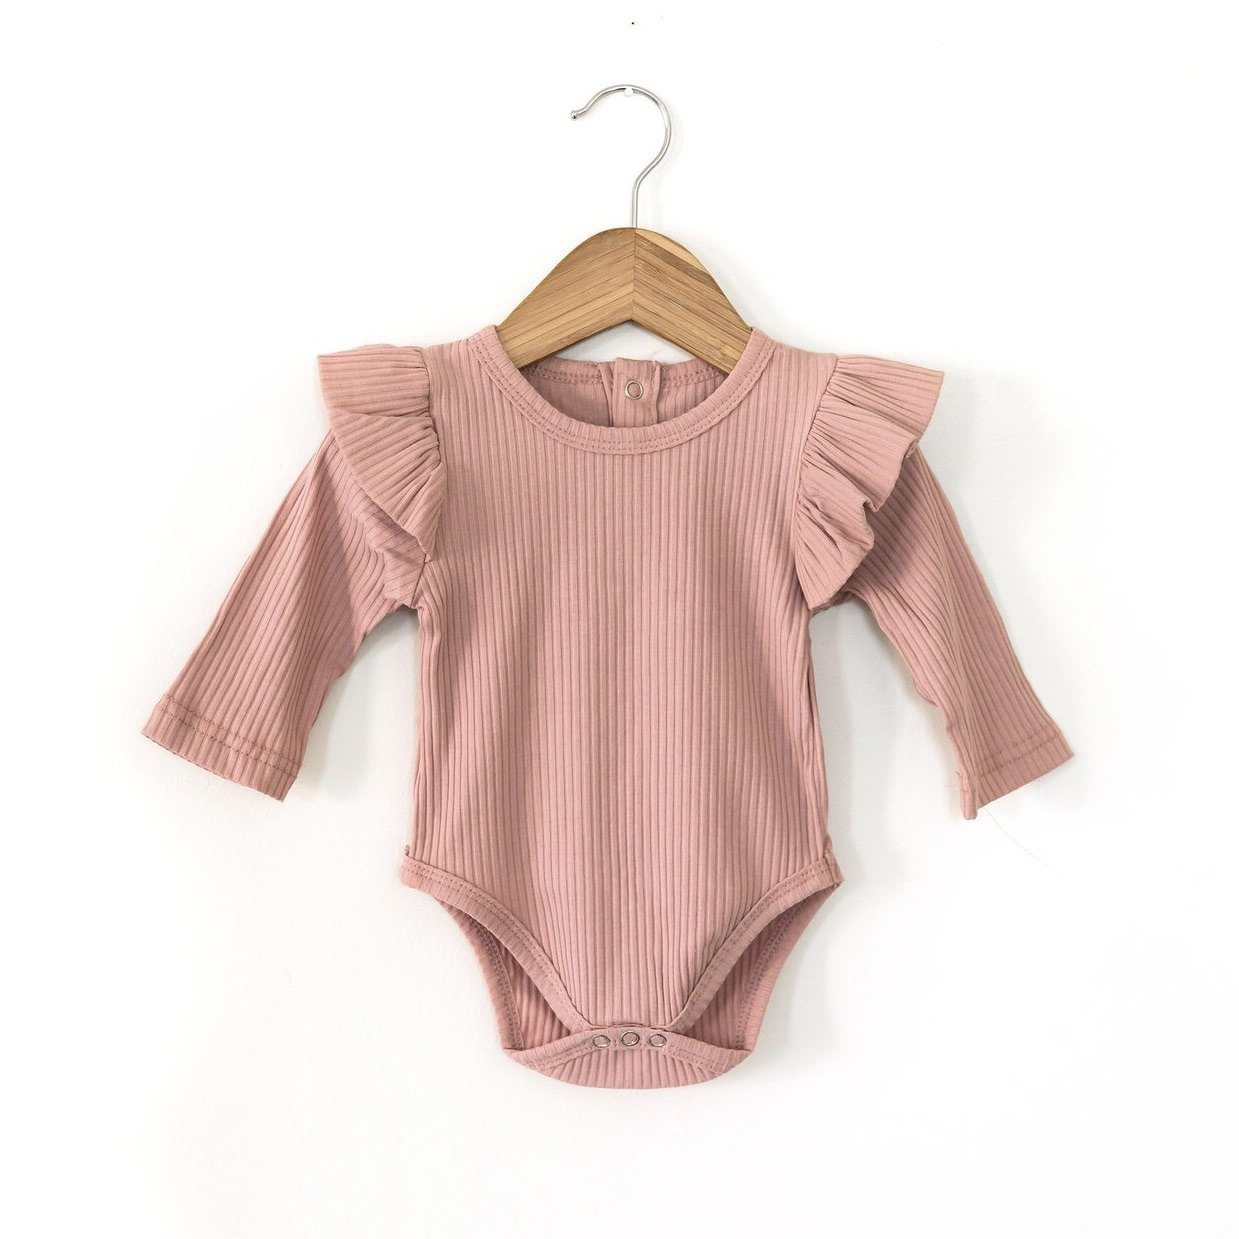 Ruffle Ribbed Romper - Blush Indigo Attic